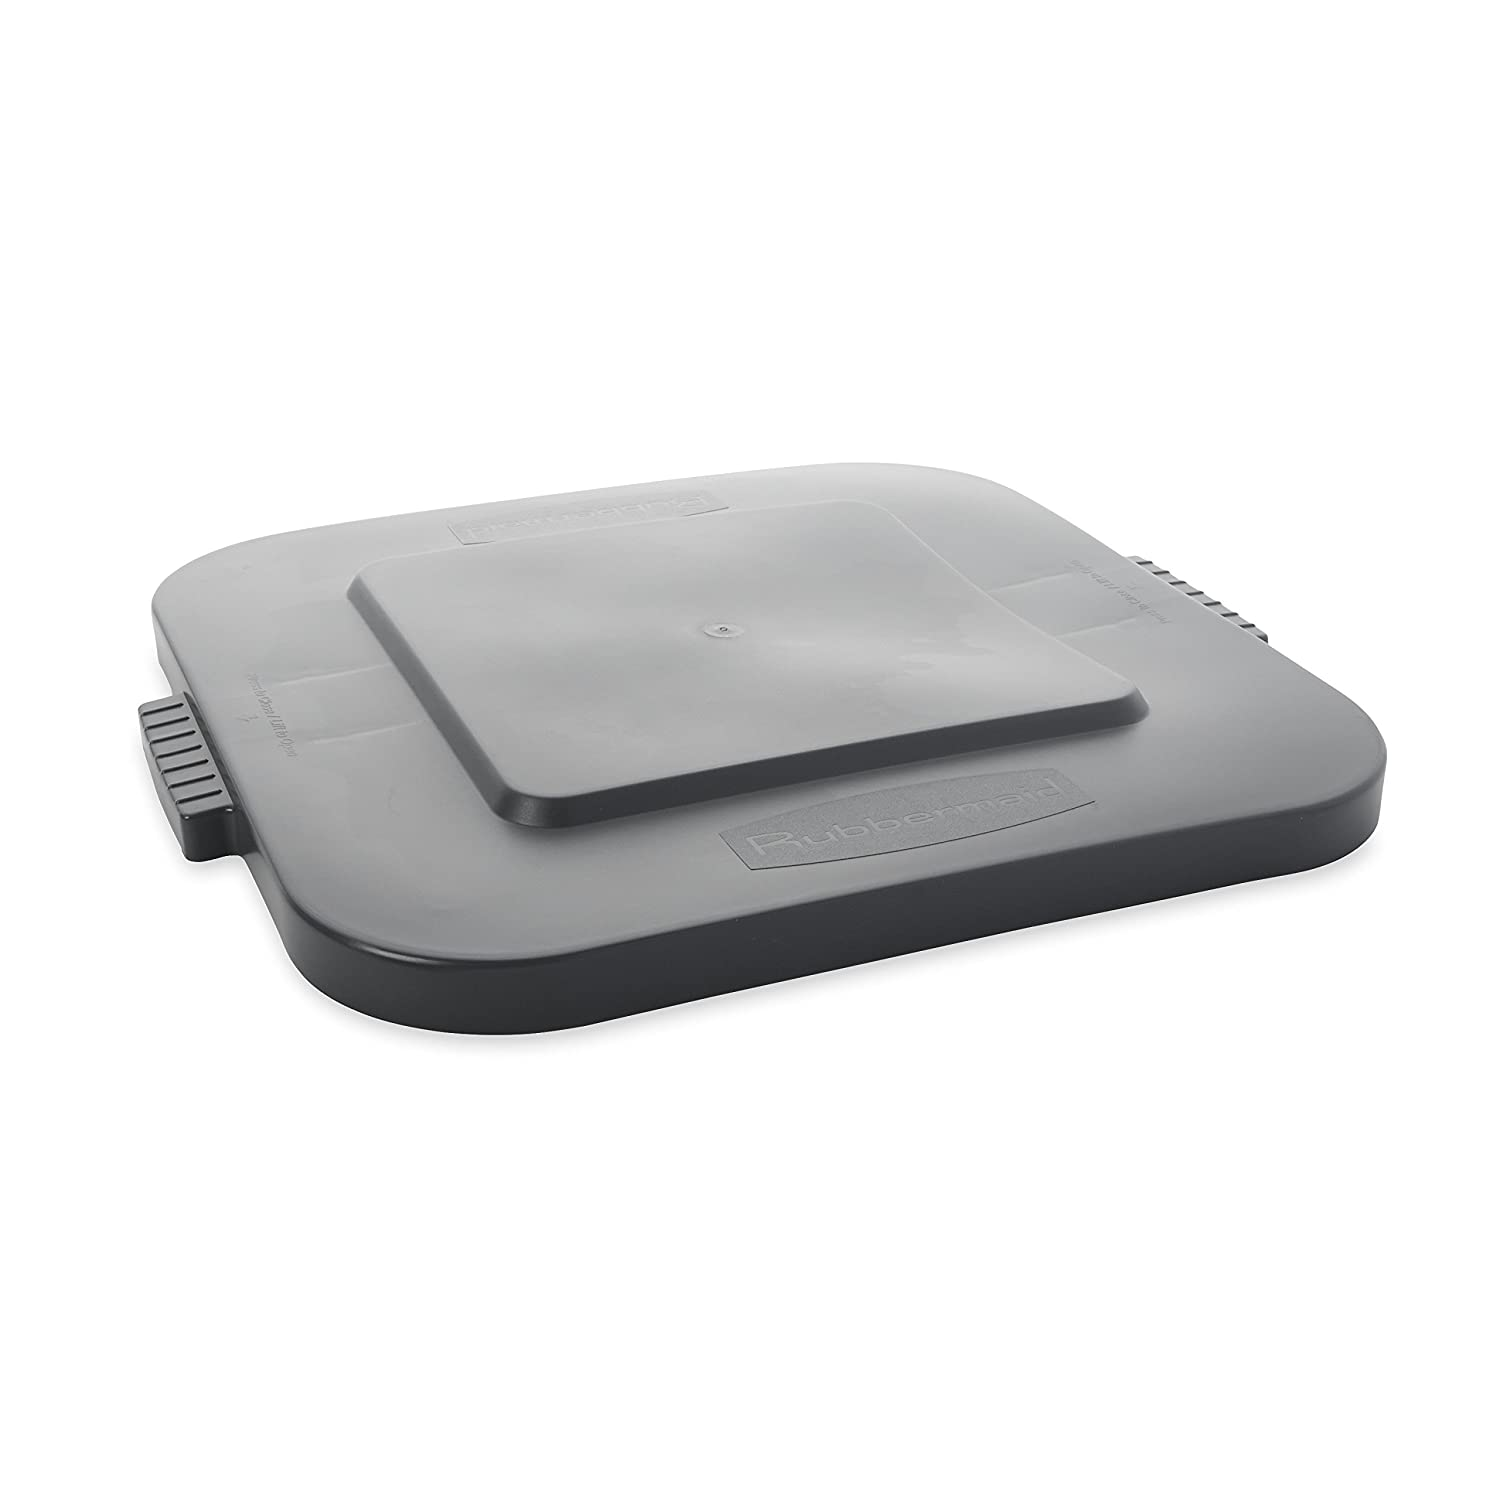 Rubbermaid Brute Snap On Lid - Grey FG352700GRAY